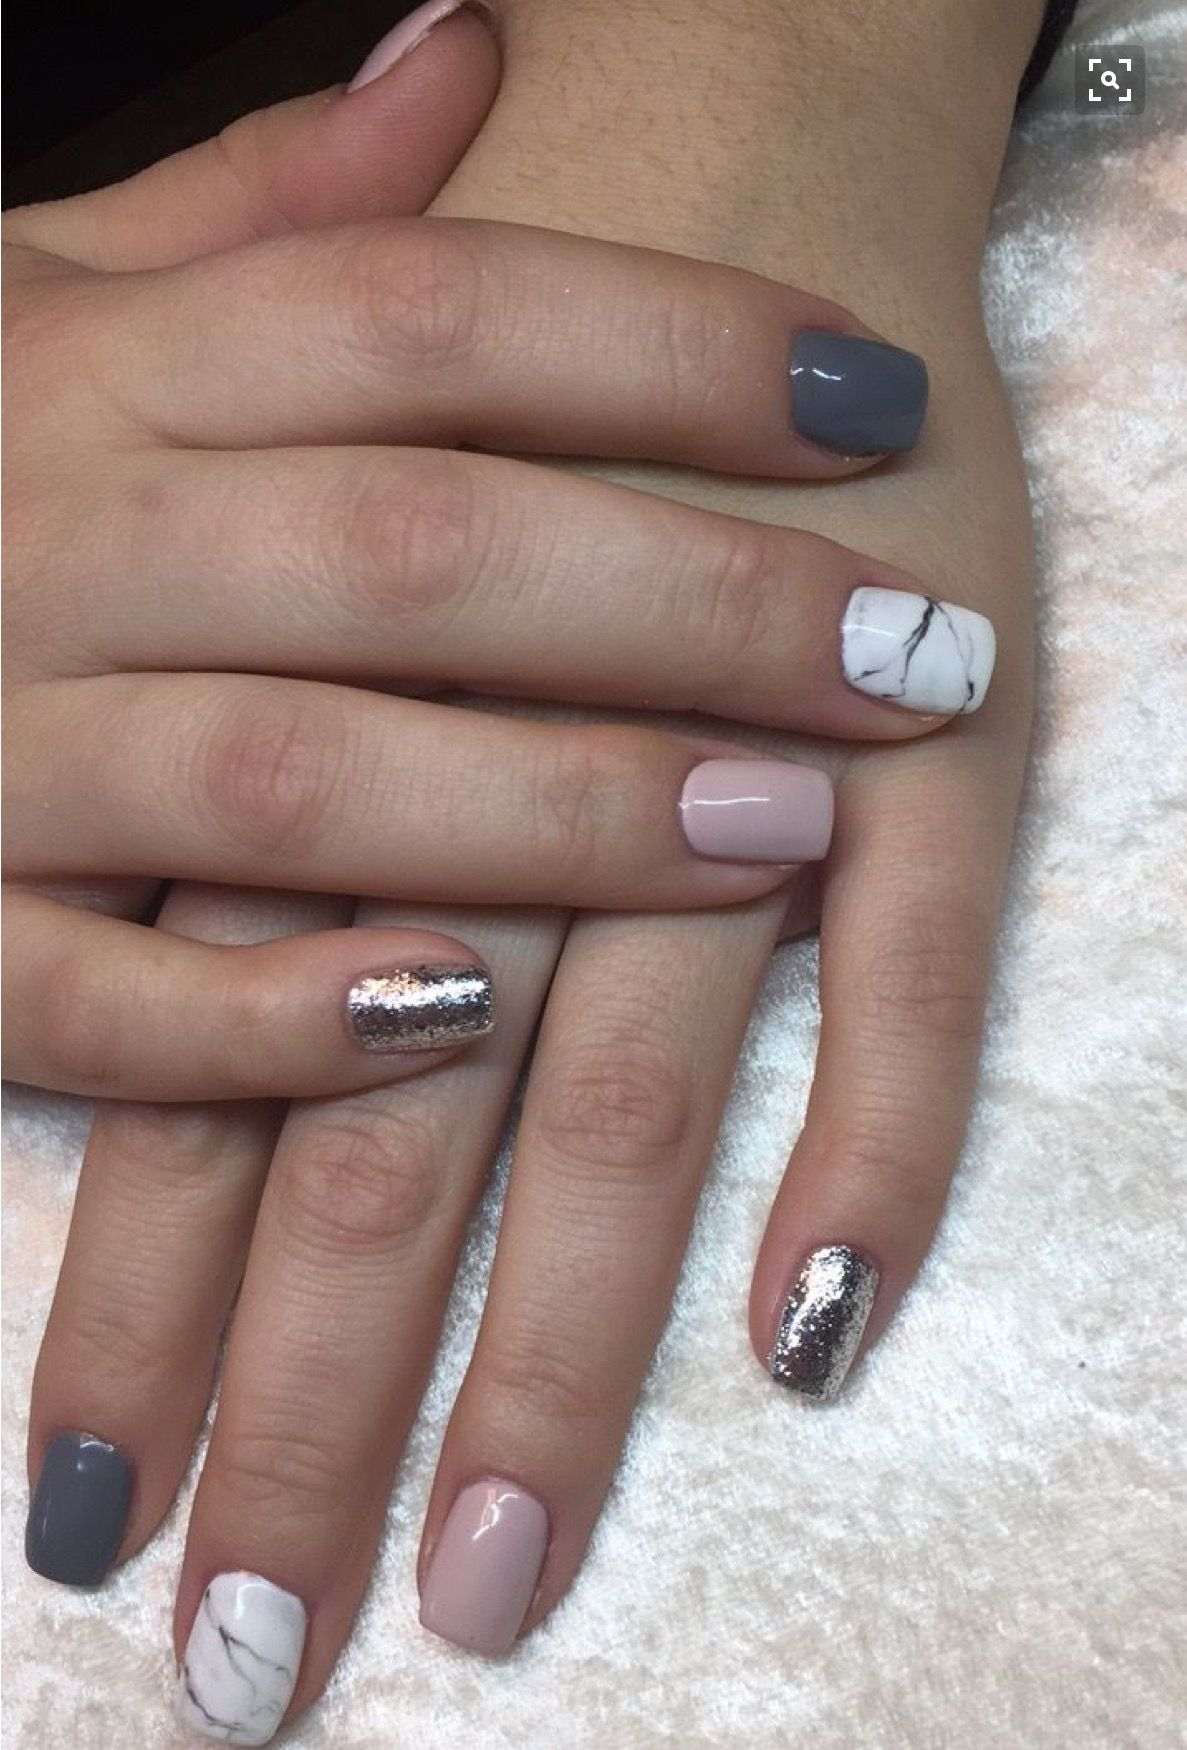 Pin by Diamond Sharp on Nailsssss | Pinterest | Makeup, Manicure and ...